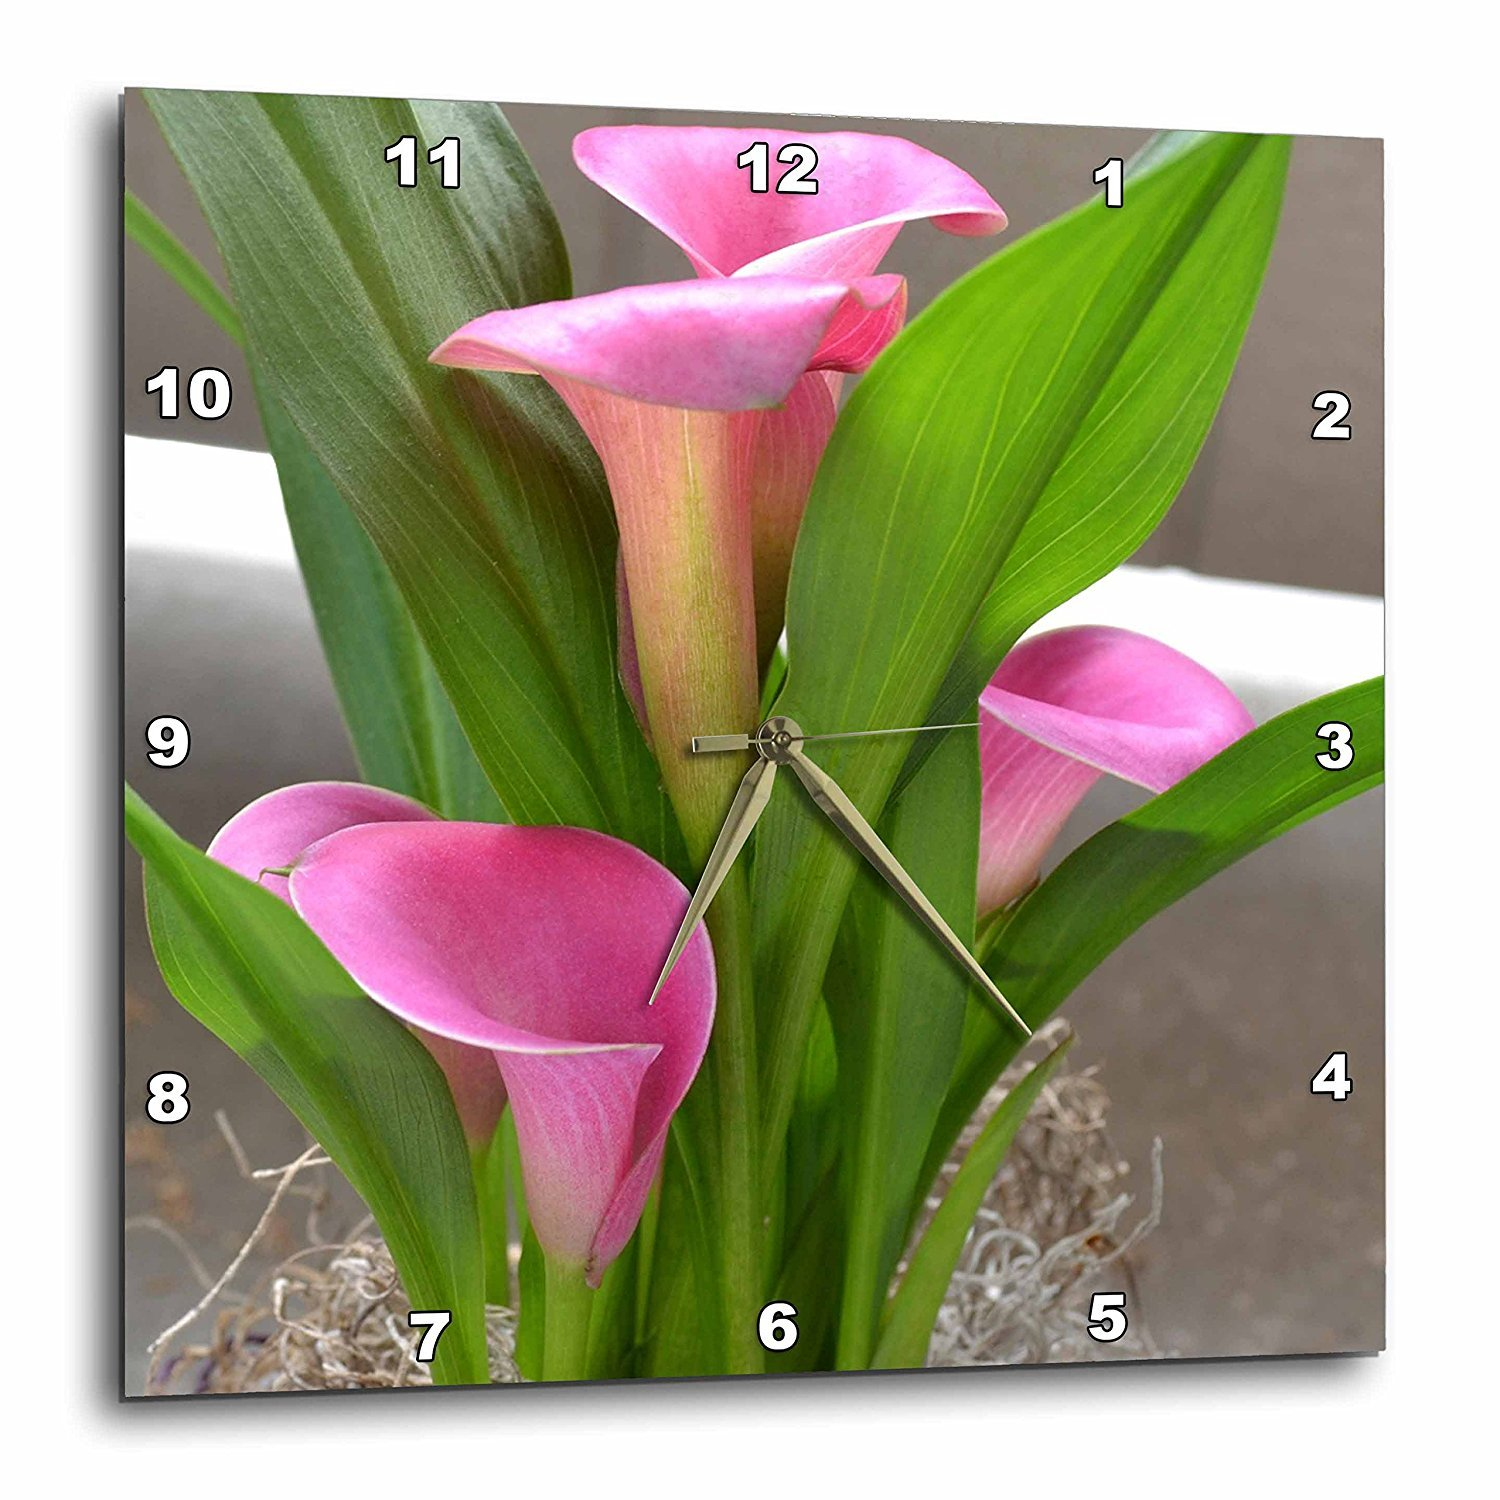 3dRose dpp_40237_2 Pretty Pink Calla Lily Flowers-Floral Photography-Wall Clock, 13 by 13-Inch by 3dRose